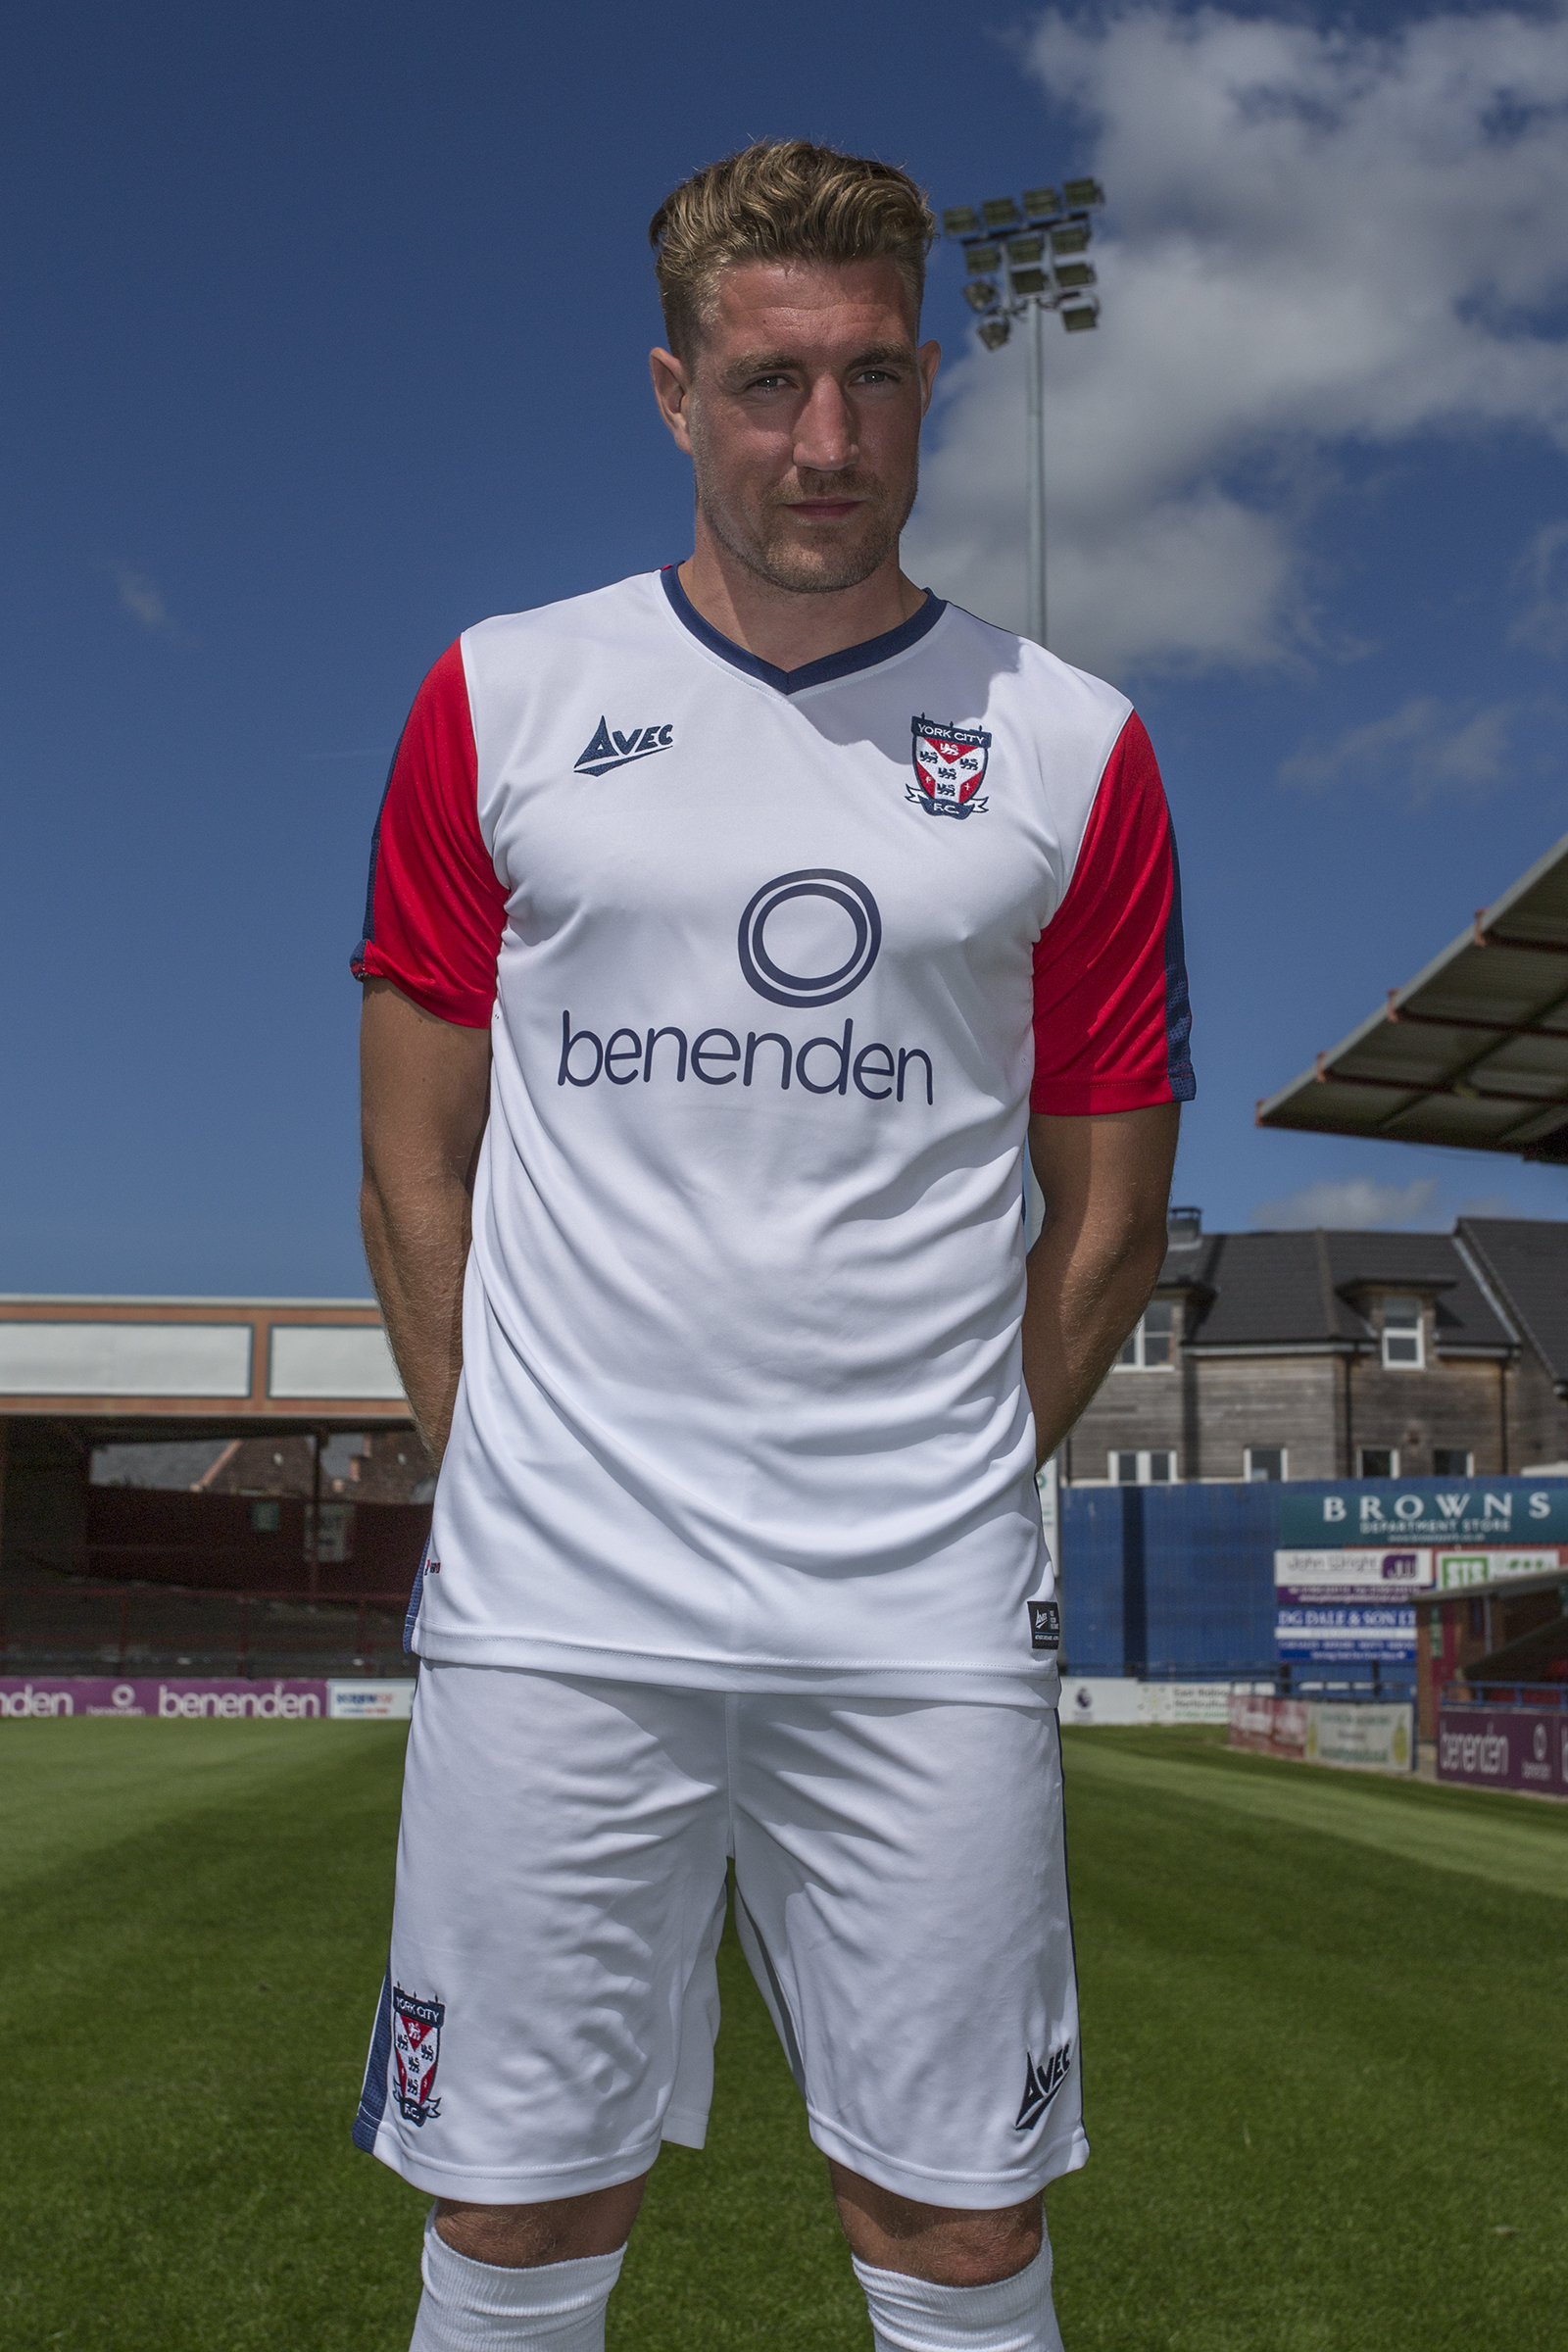 d36f6ded9a9 New White Away Kit | York City Football Club